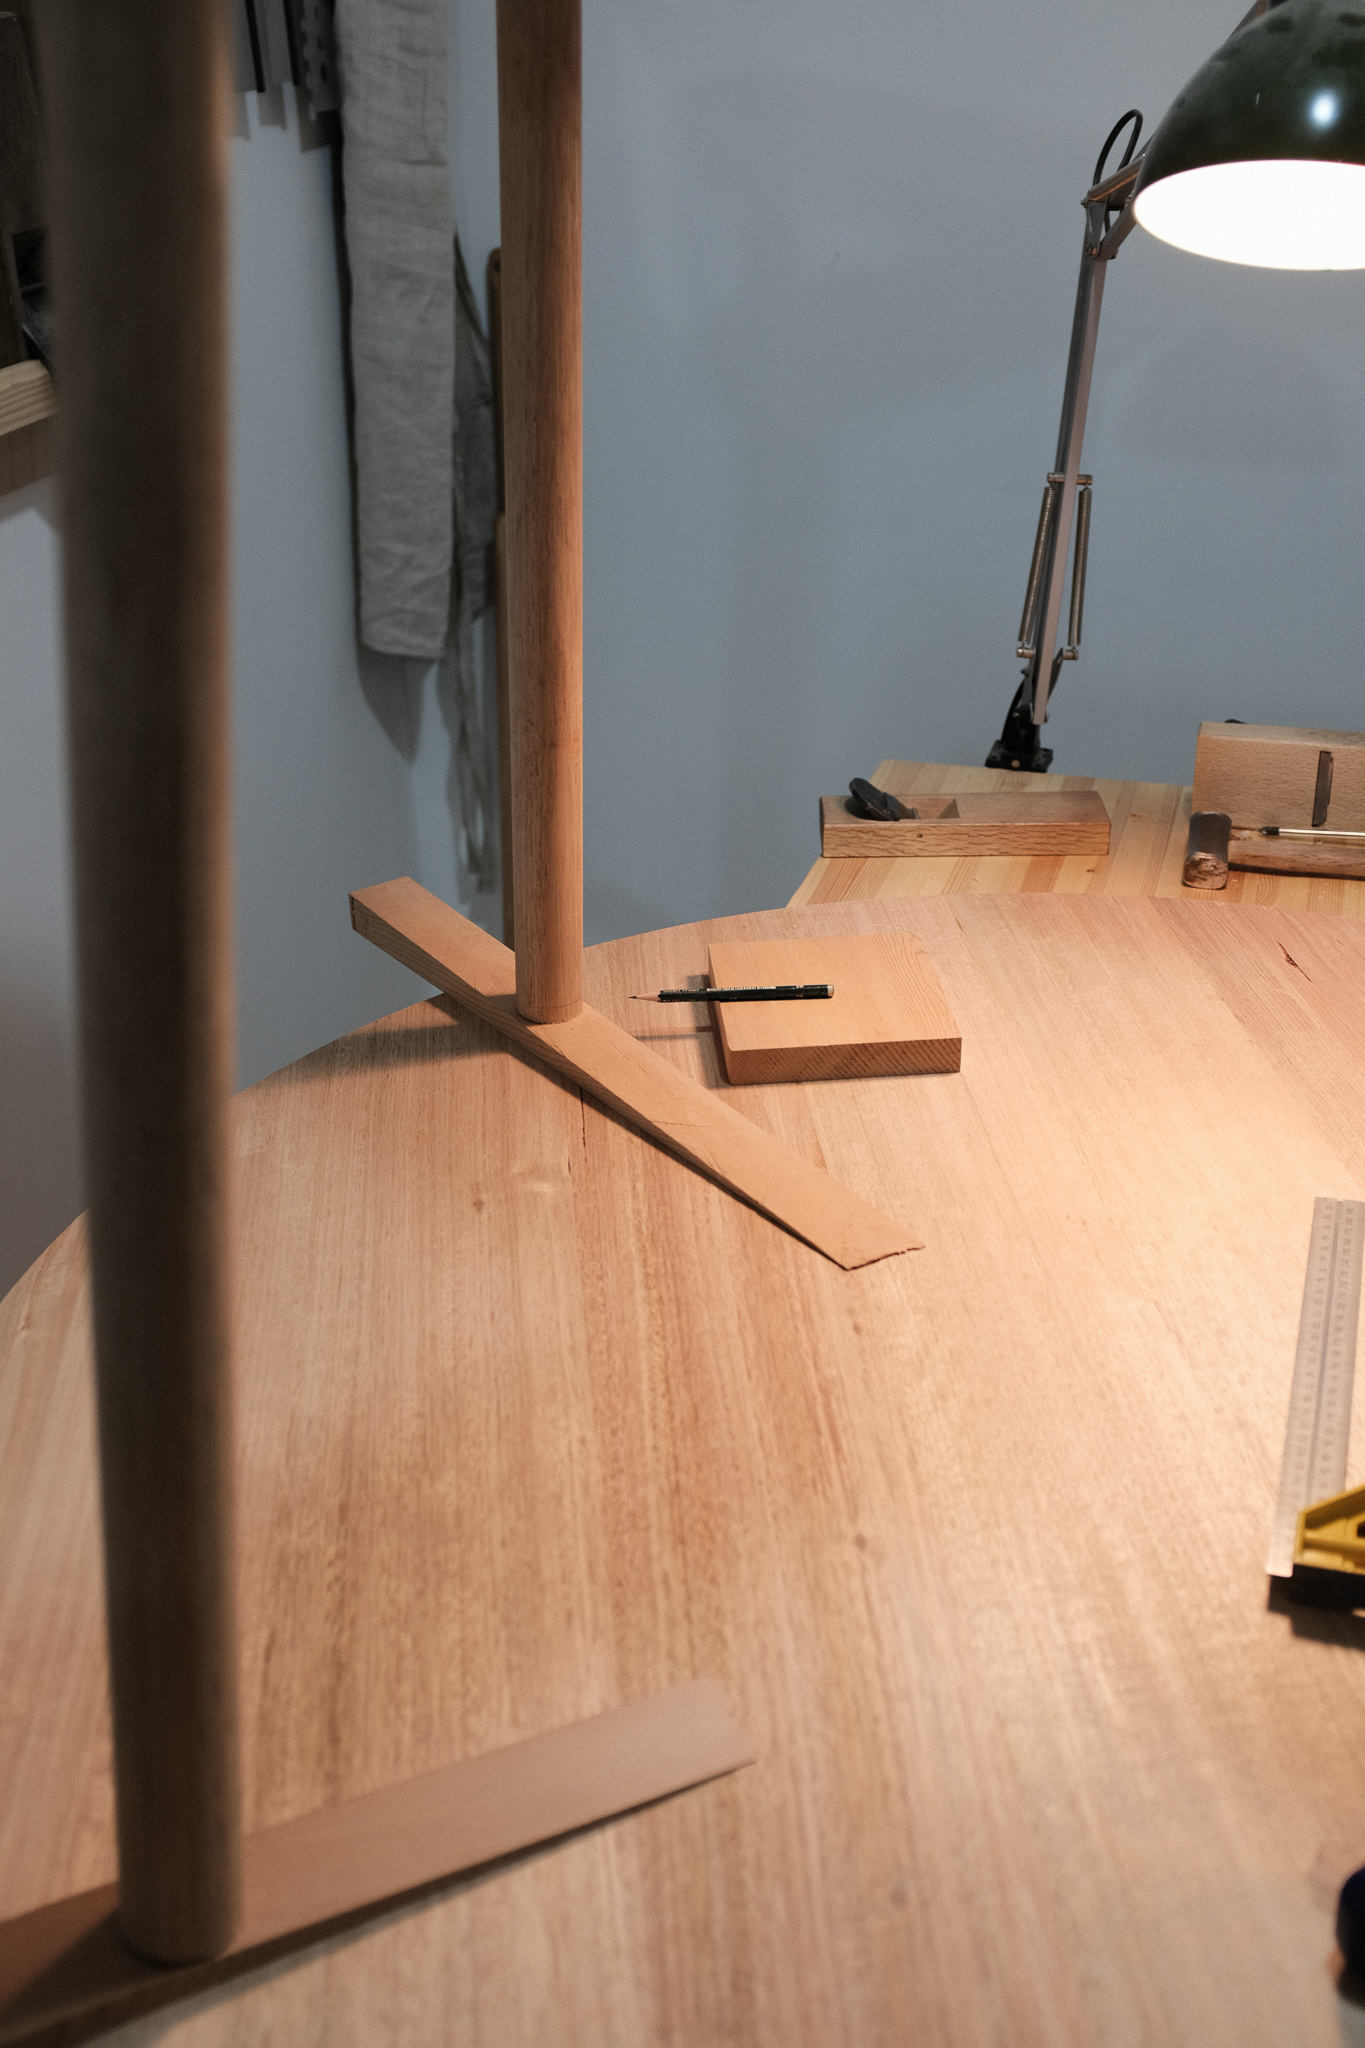 Leveling tete-a-tete table legs PF